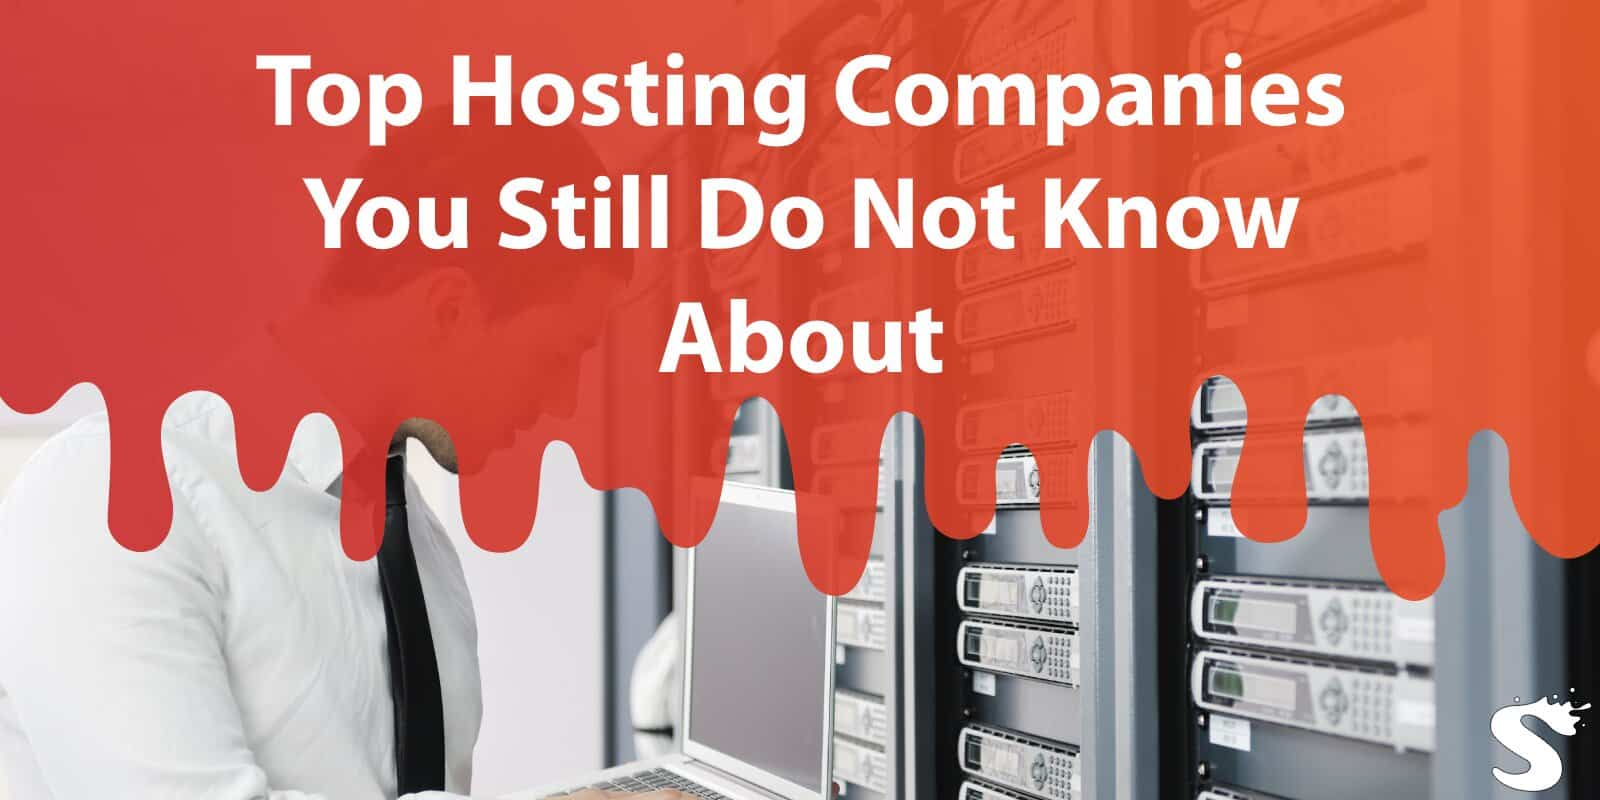 Top Hosting Companies You Still Do Not Know About